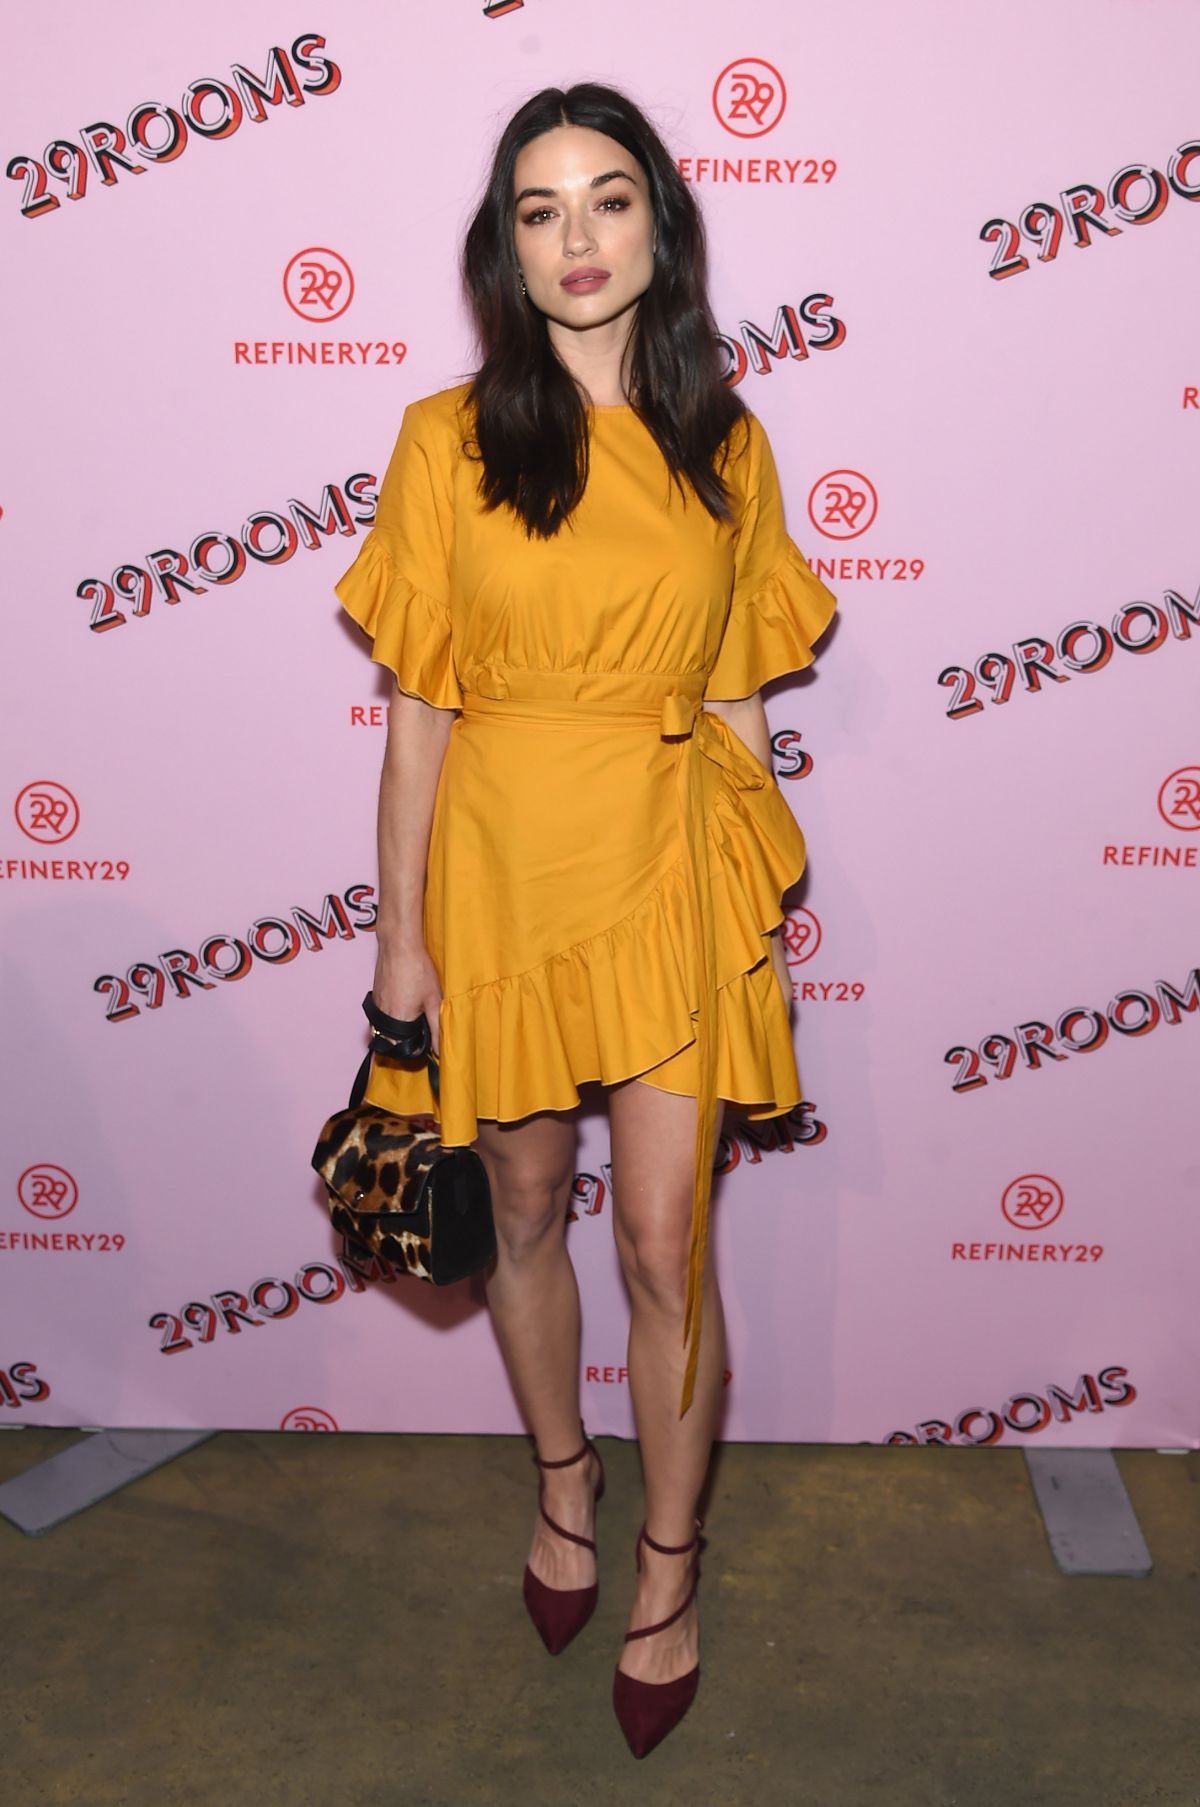 crystal-reed-at-refinery29-third-annual-29rooms-turn-it-into-art-event-in-brooklyn-09-07-2017_2.jpg